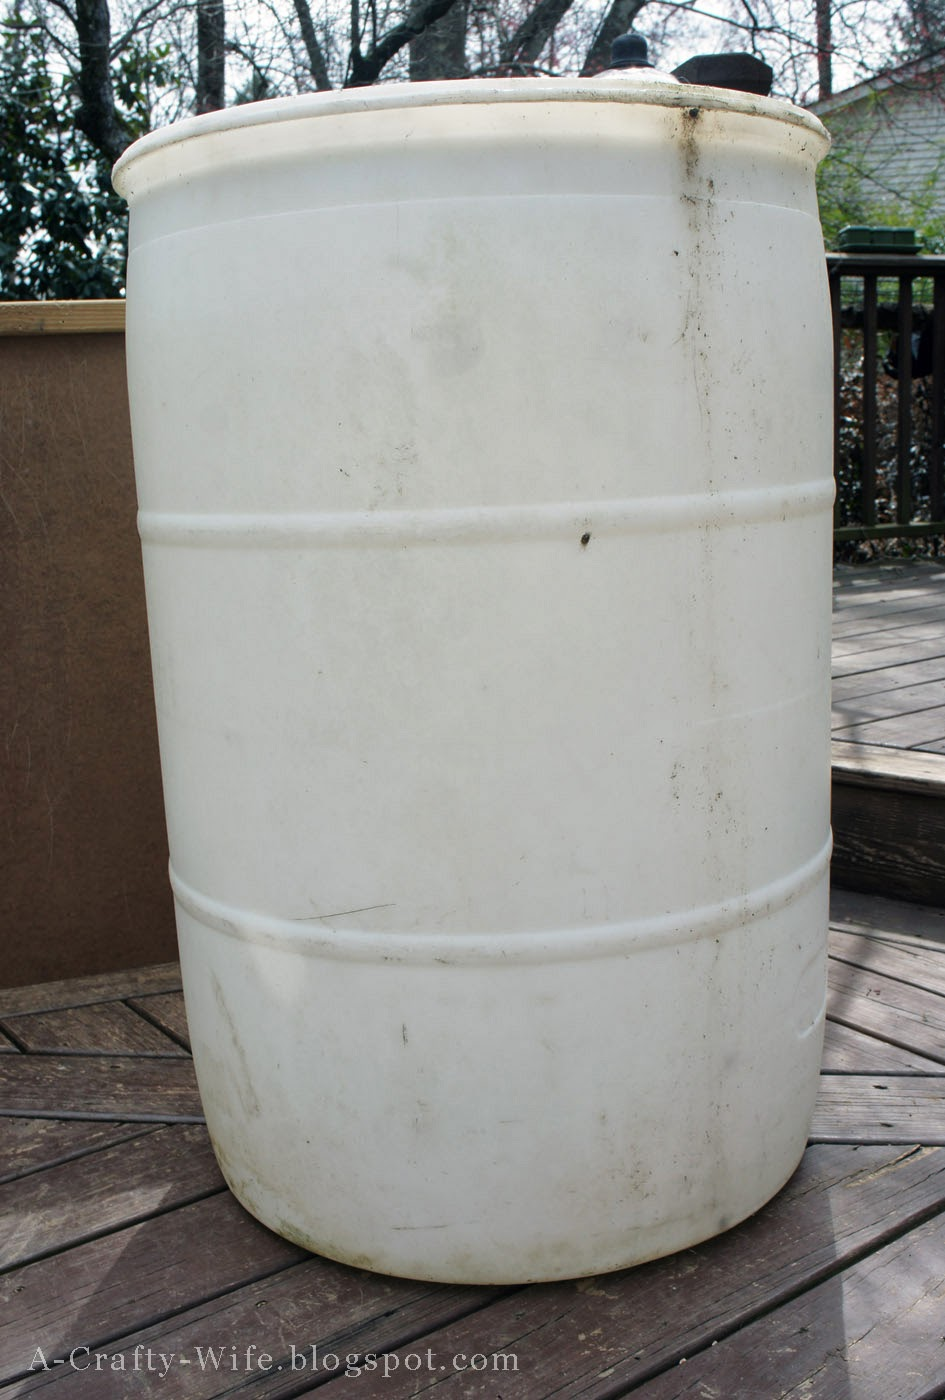 Use a 55 gallon drum for rain barrel | A Crafty Wife